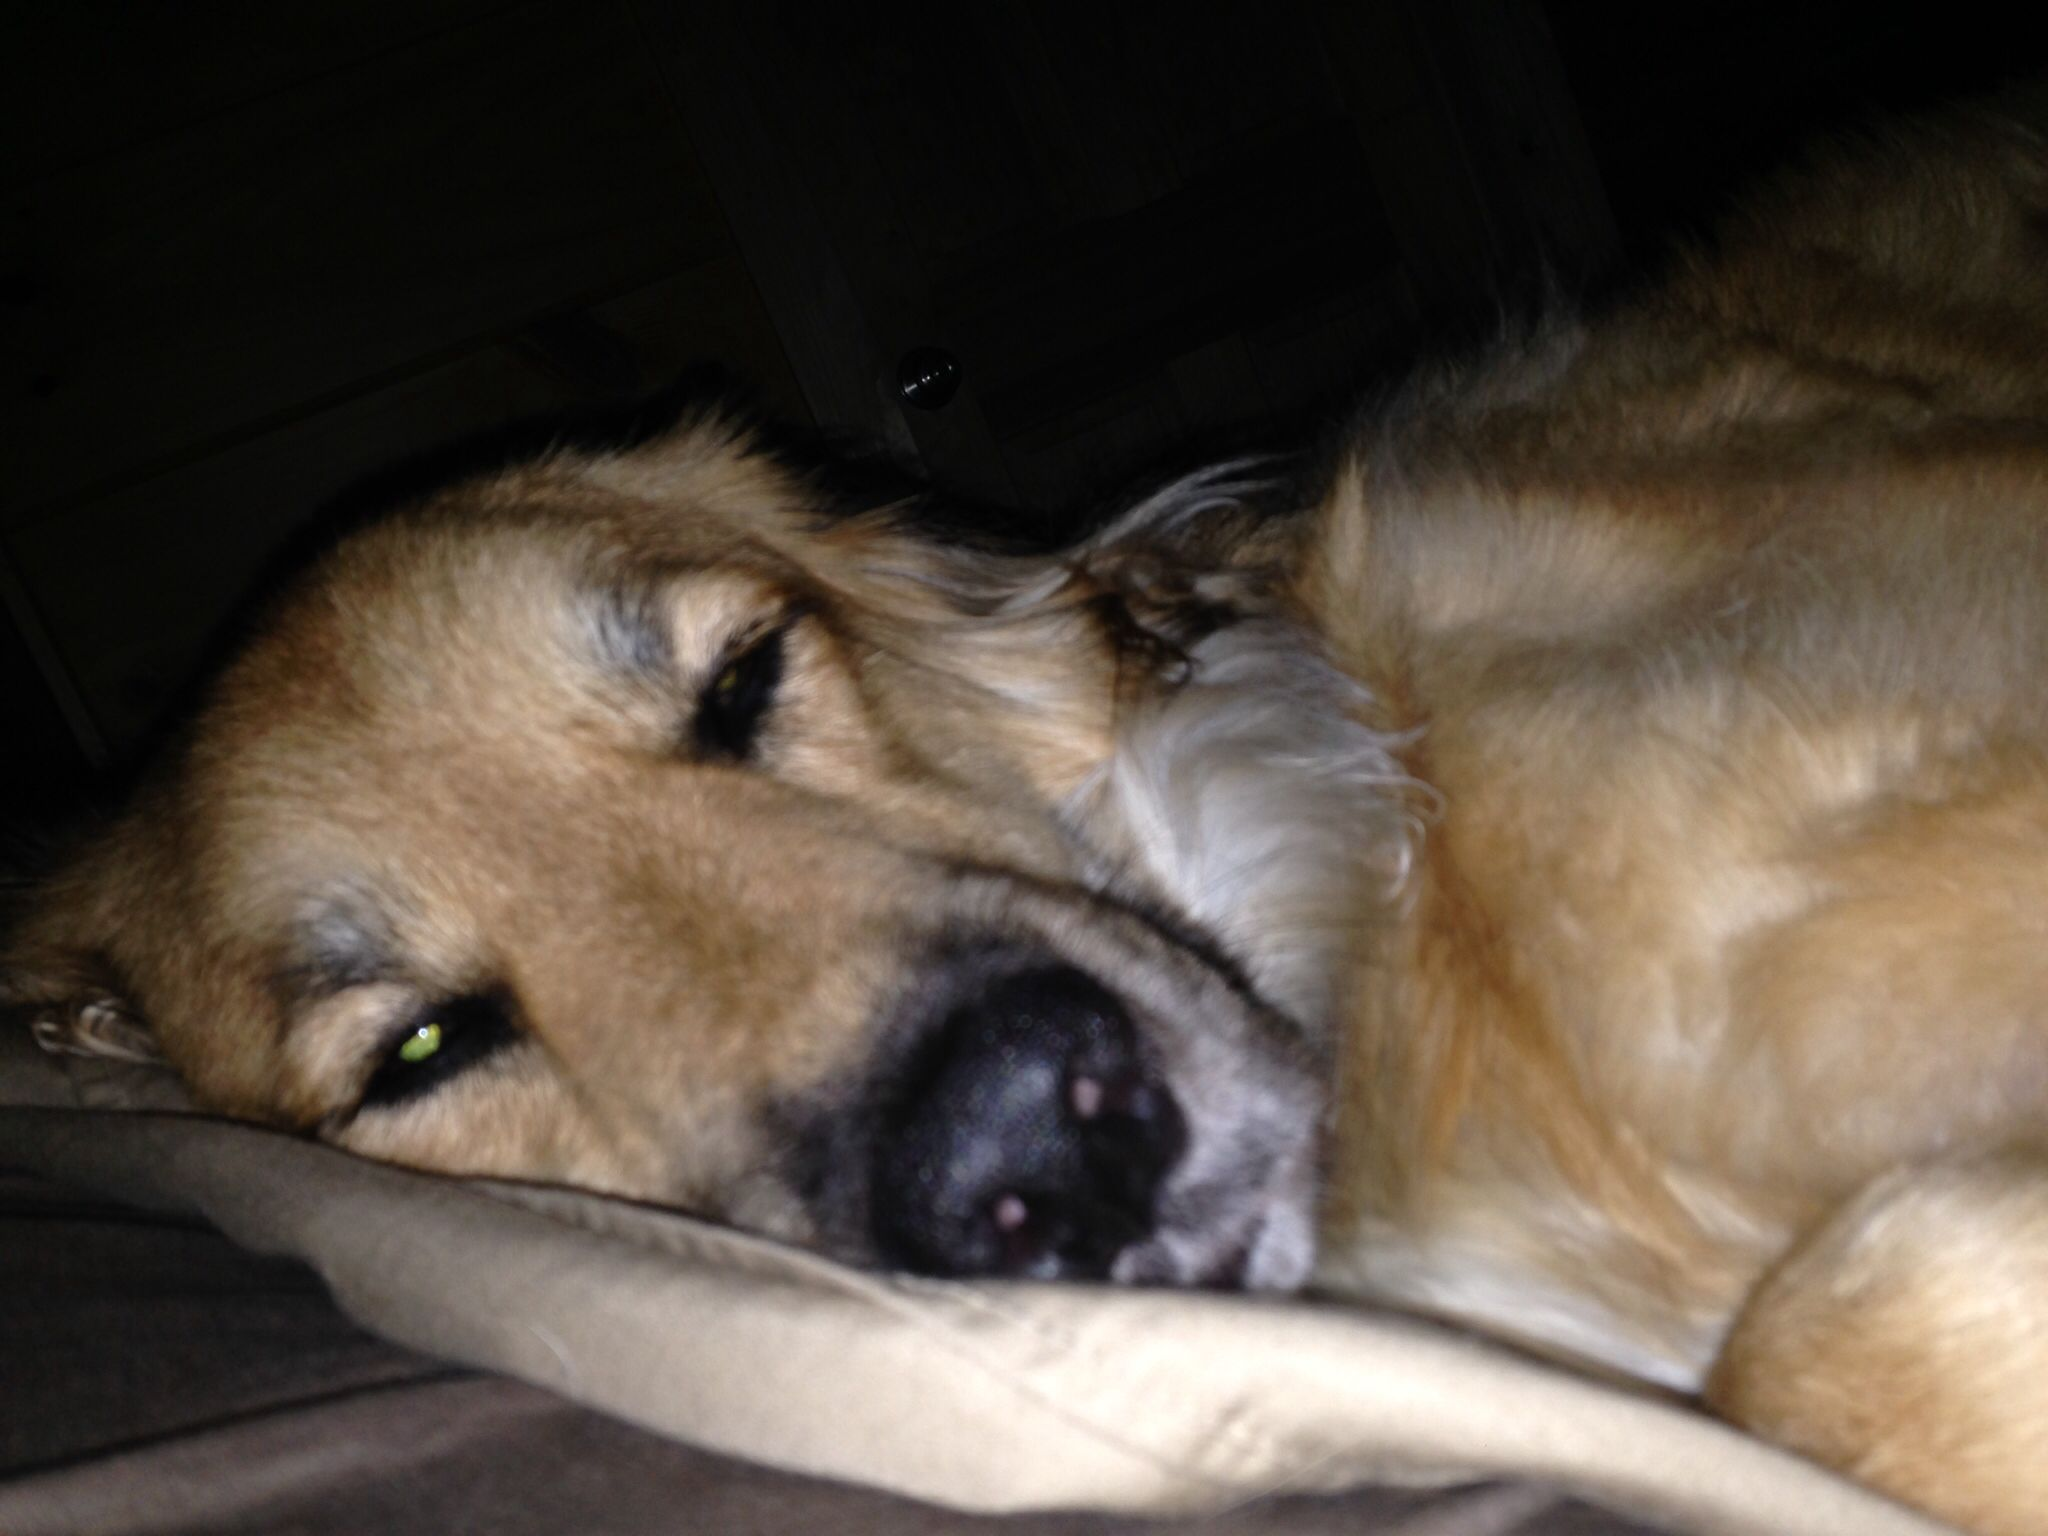 Maggie on daddy's pillow